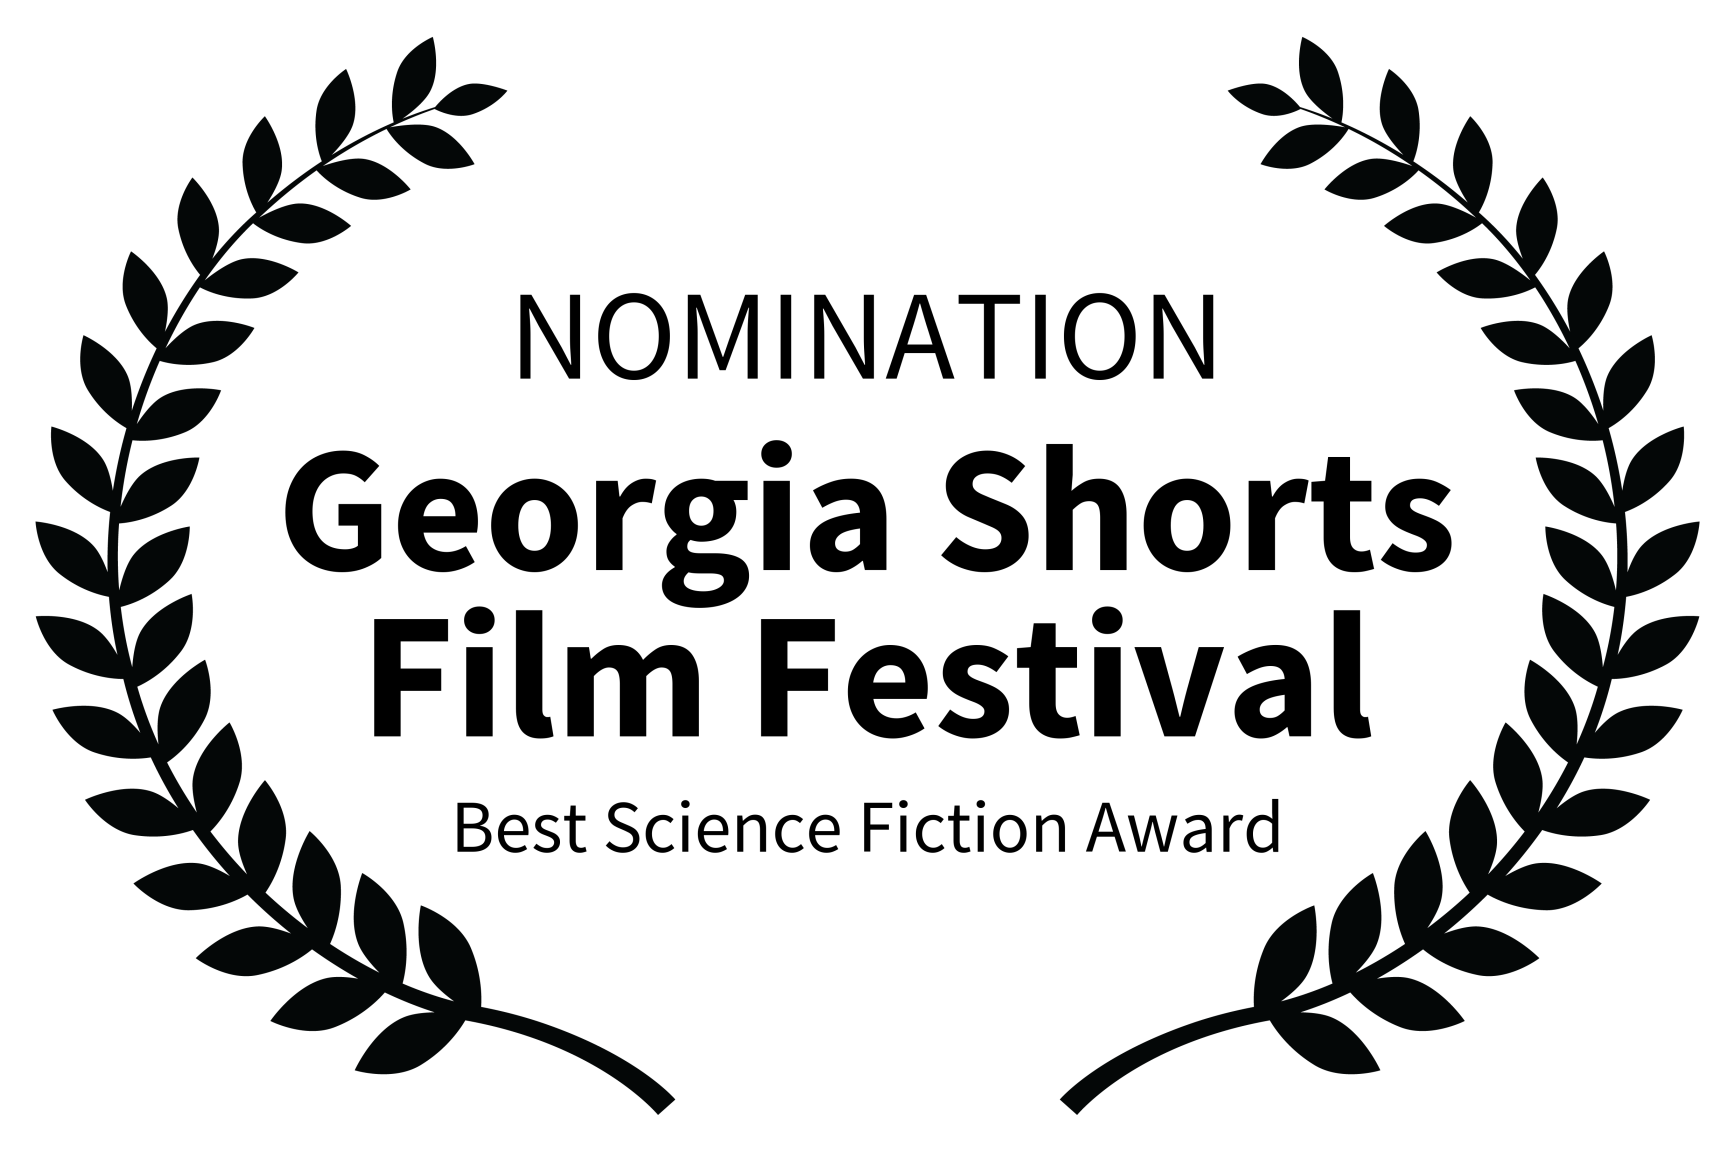 NOMINATION - Georgia Shorts Film Festival - Best Science Fiction Award.png